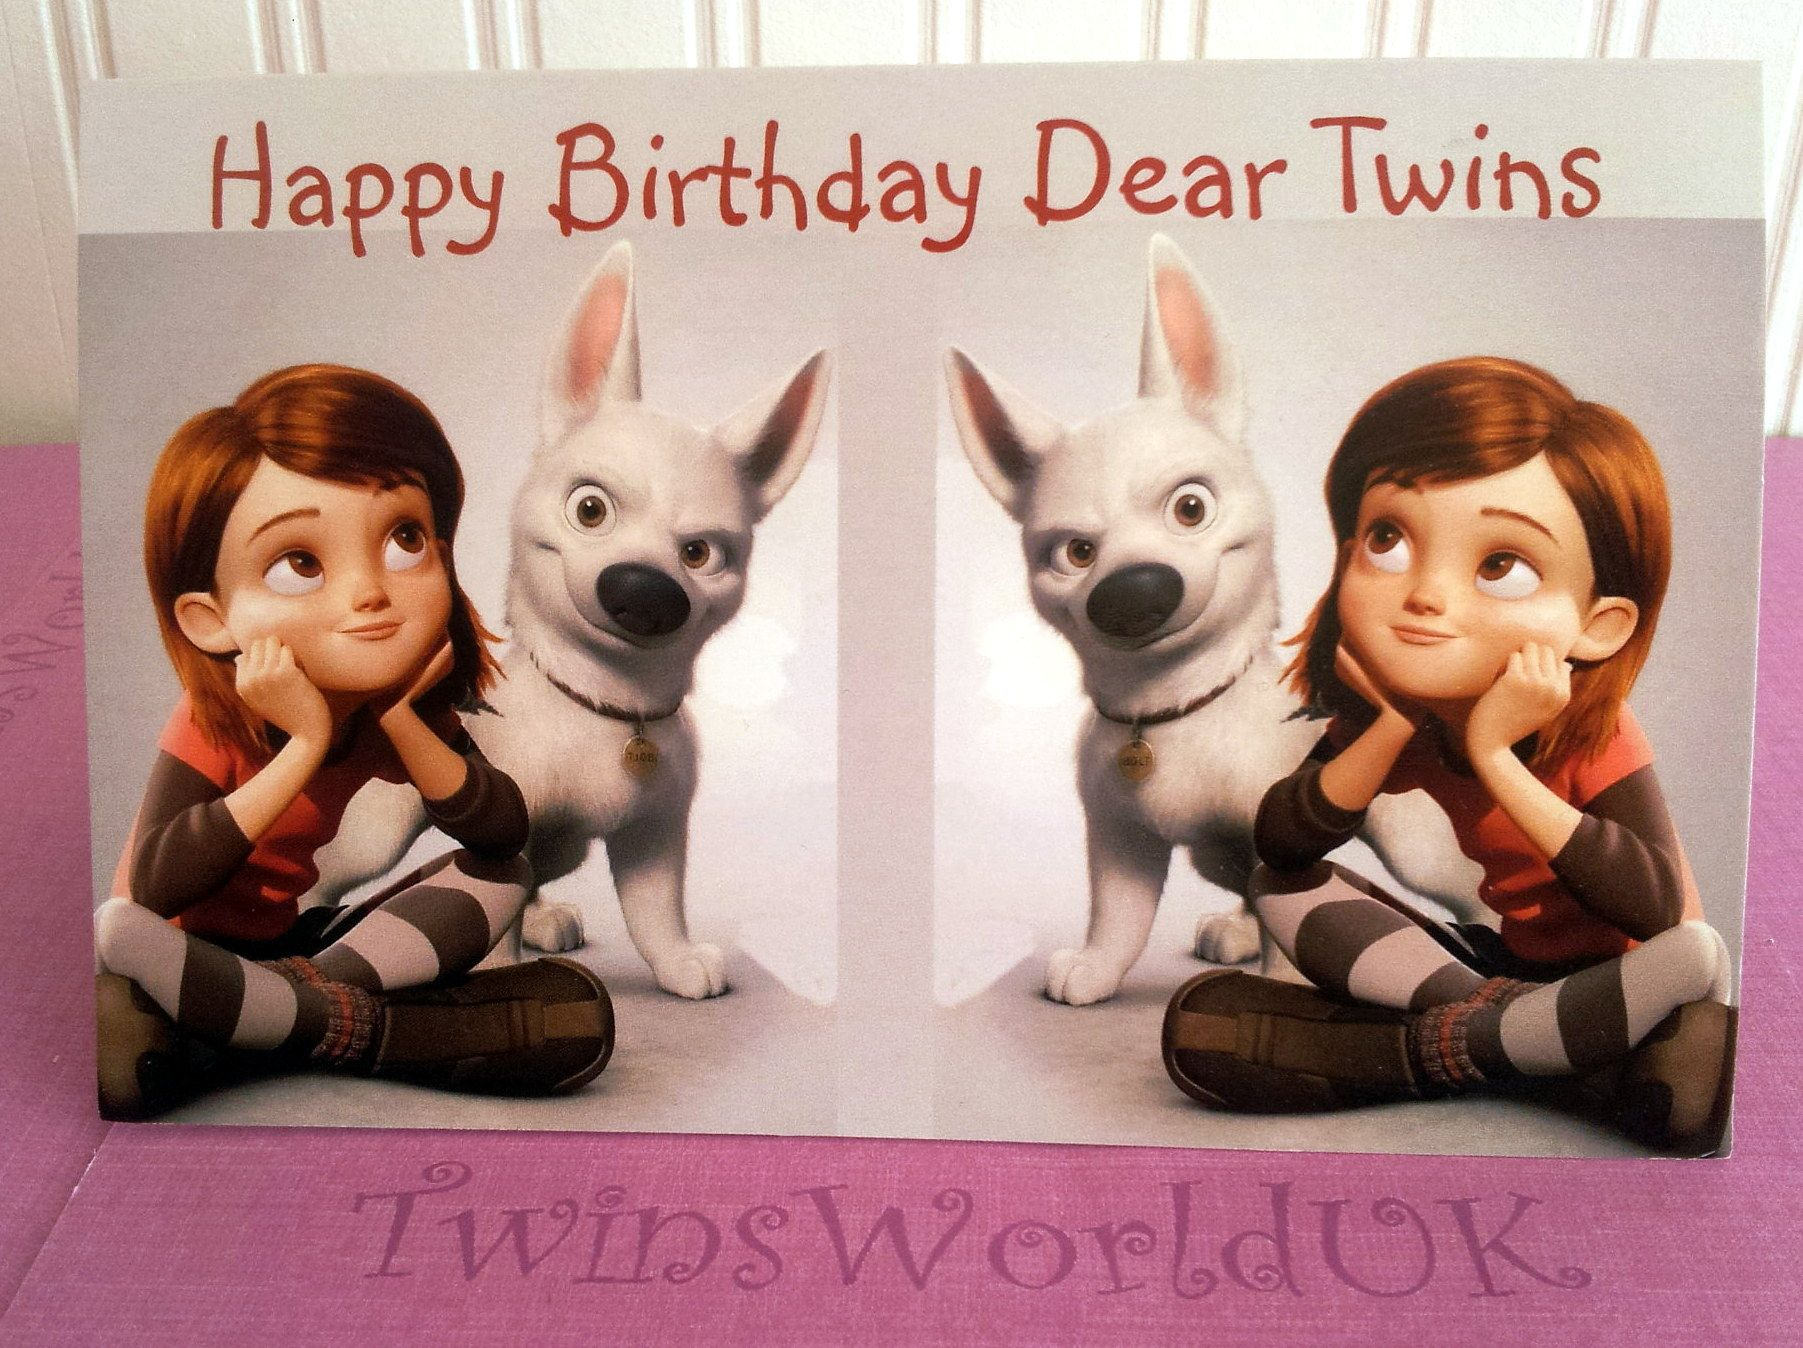 Happy Birthday Dear Twins - Bolt Rating: Not Rated Yet £1.60